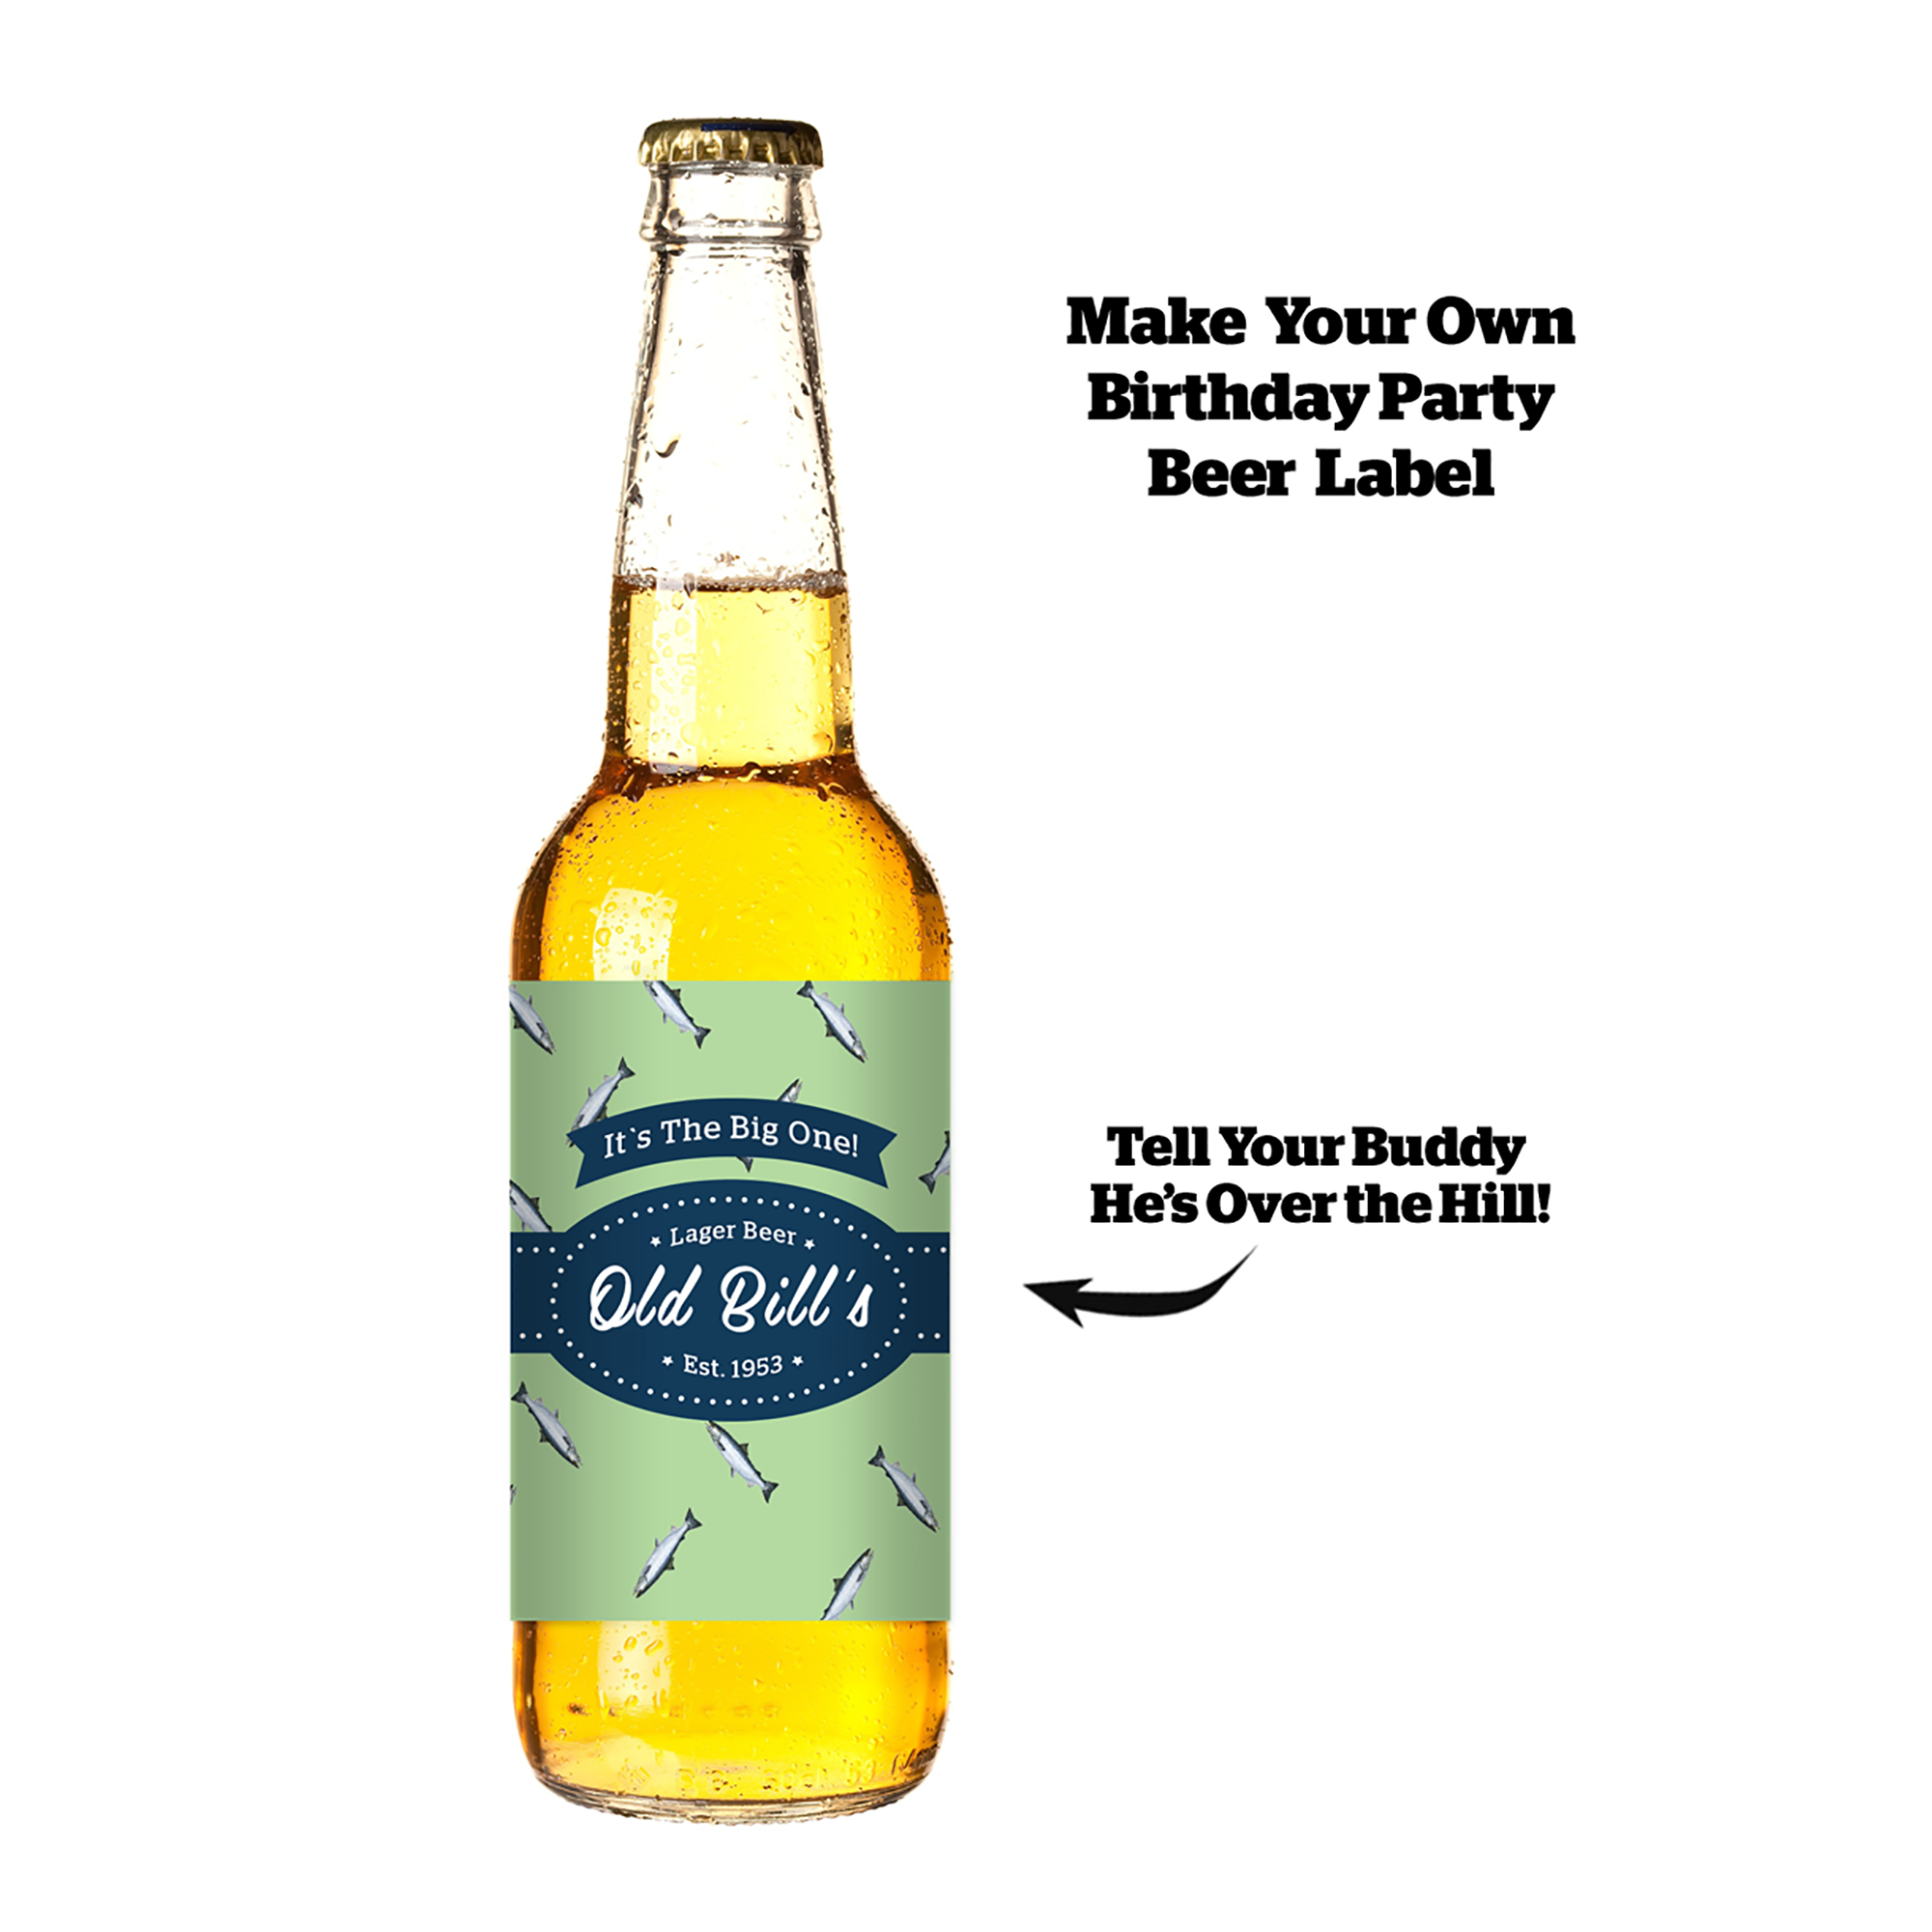 Personalized Beer Bottle Label - For Digital T-shirt Printing!